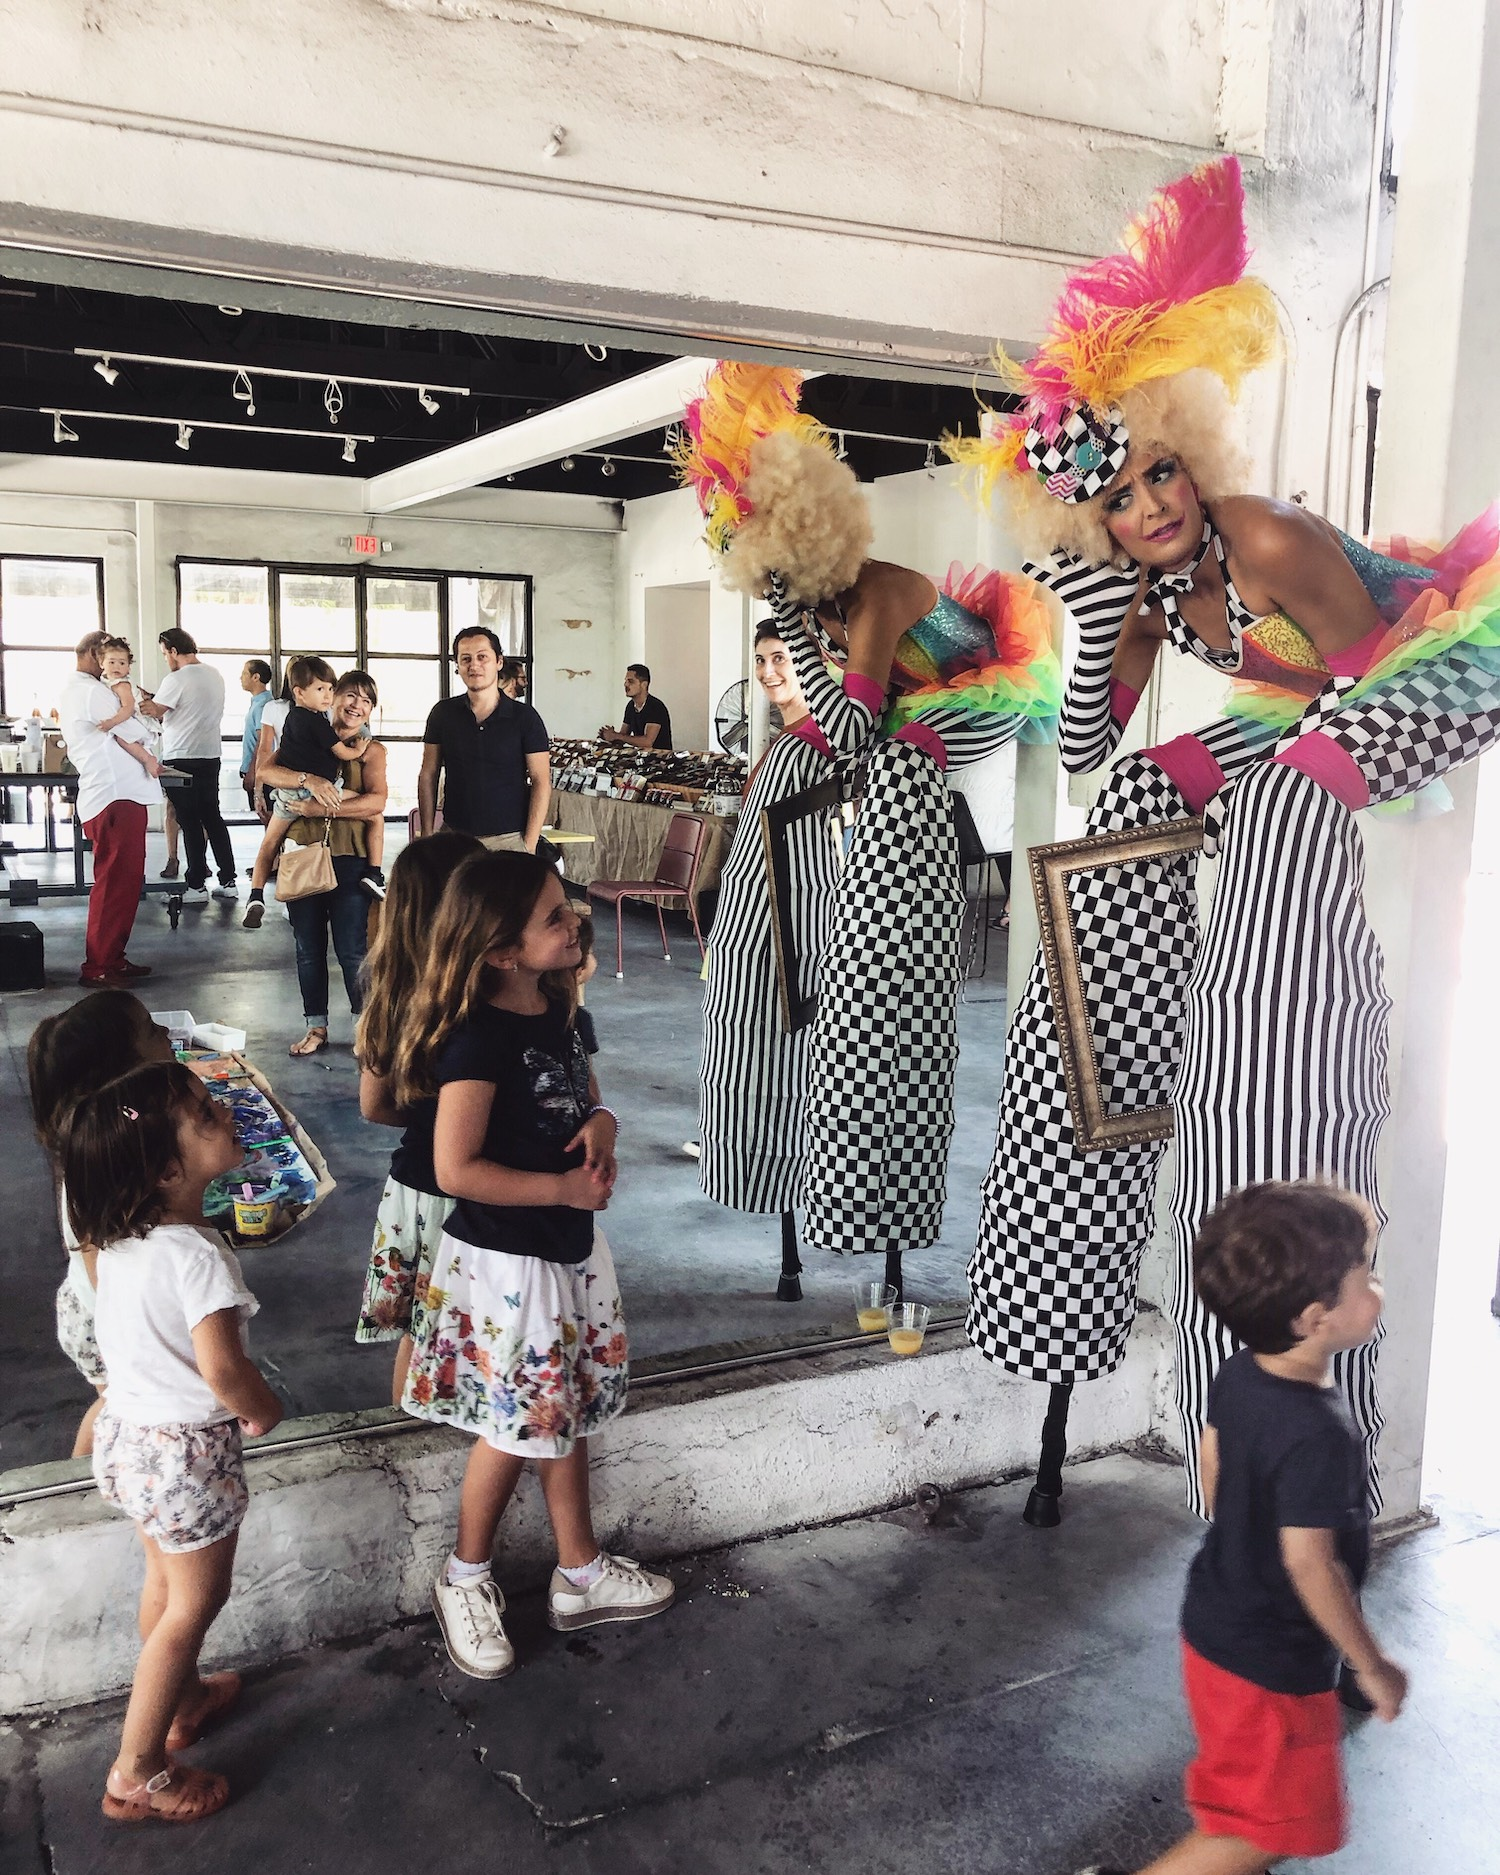 "Featured talent - Fifi The Clown""Fifi the Clown loves to entertain adults and especially Kids. Her antics leave everyone with a big smile on their face and warmness in their hearts.""Soraya, stilt-walkerClick HERE to meet the artist📧To apply for #IronsideTalents please email: info@miamiironside.com"